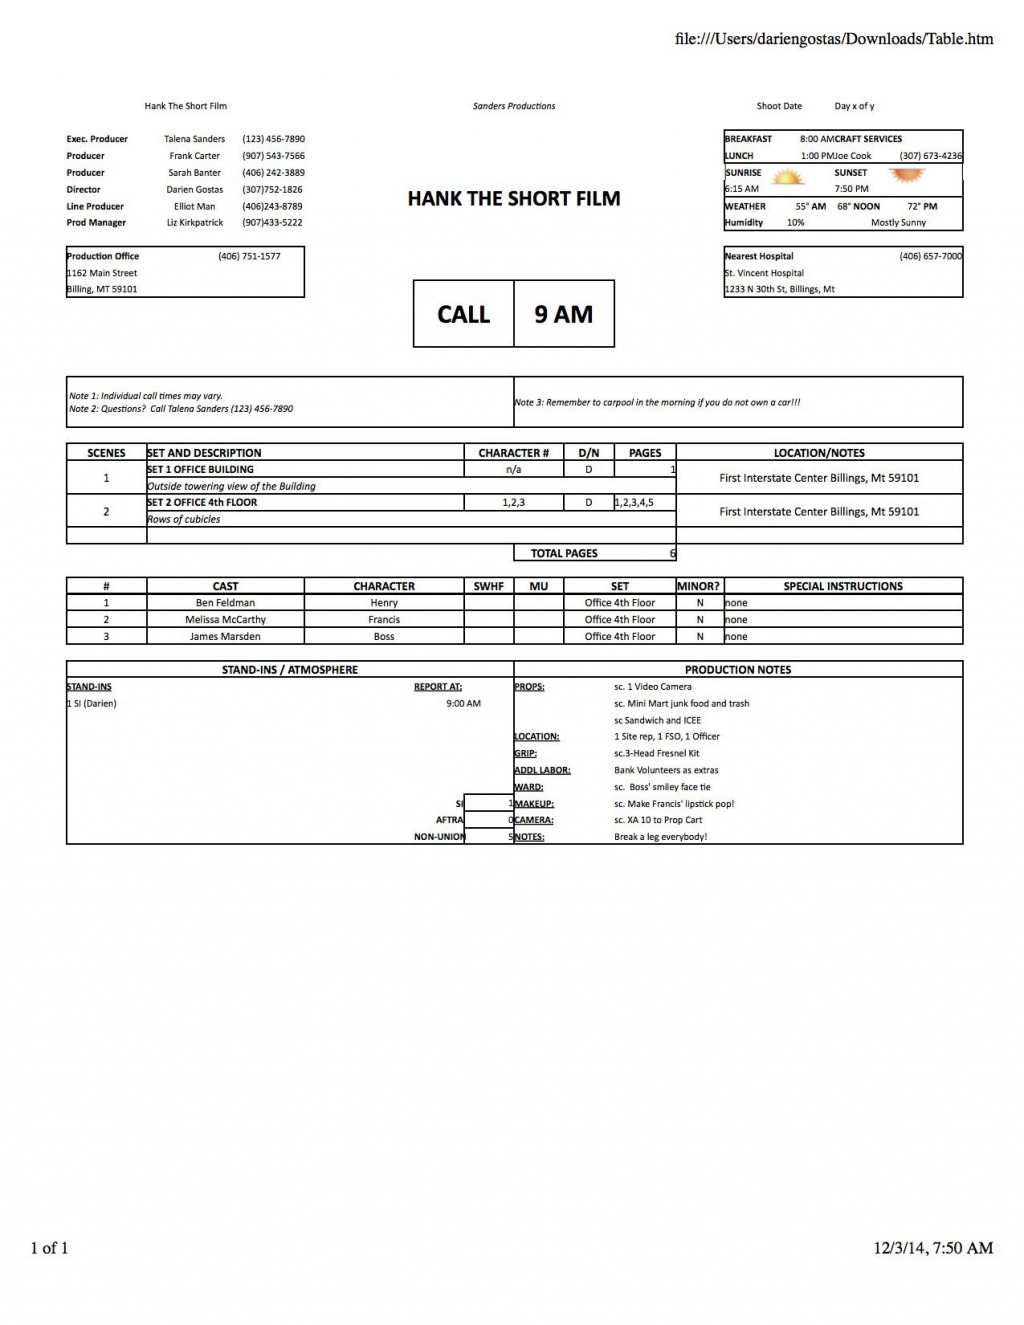 005 Wondrou Film Call Sheet Sample Photo  Template Download Excel Google DocLarge